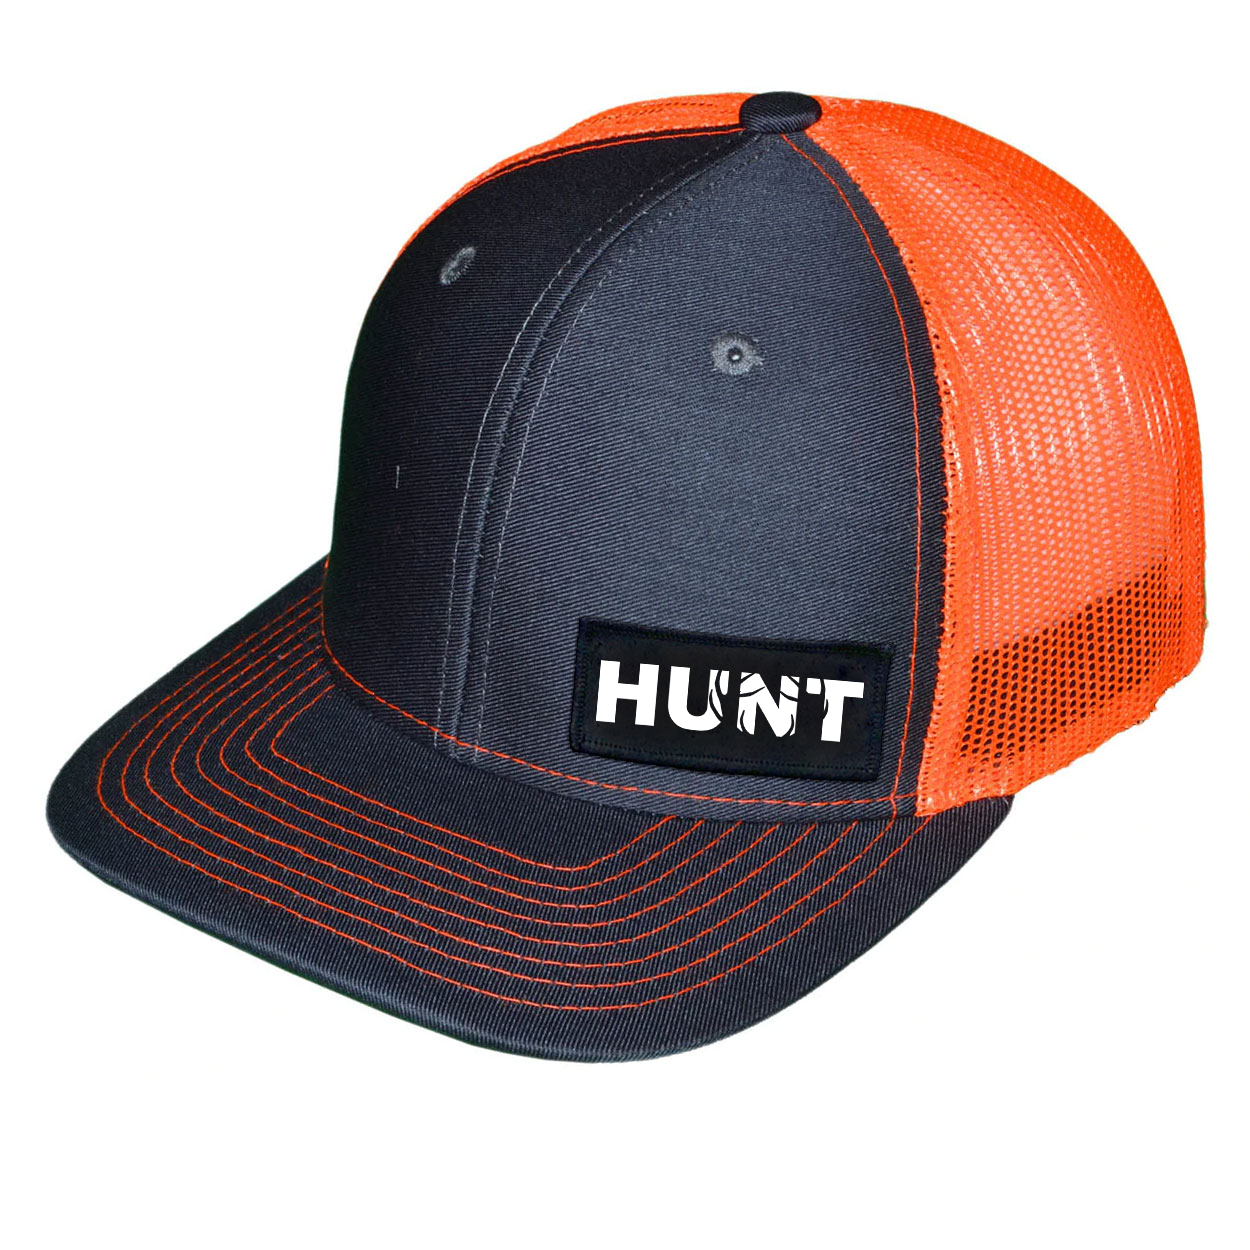 Hunt Rack Logo Night Out Woven Patch Snapback Trucker Hat Dark Gray/Orange (White Logo)